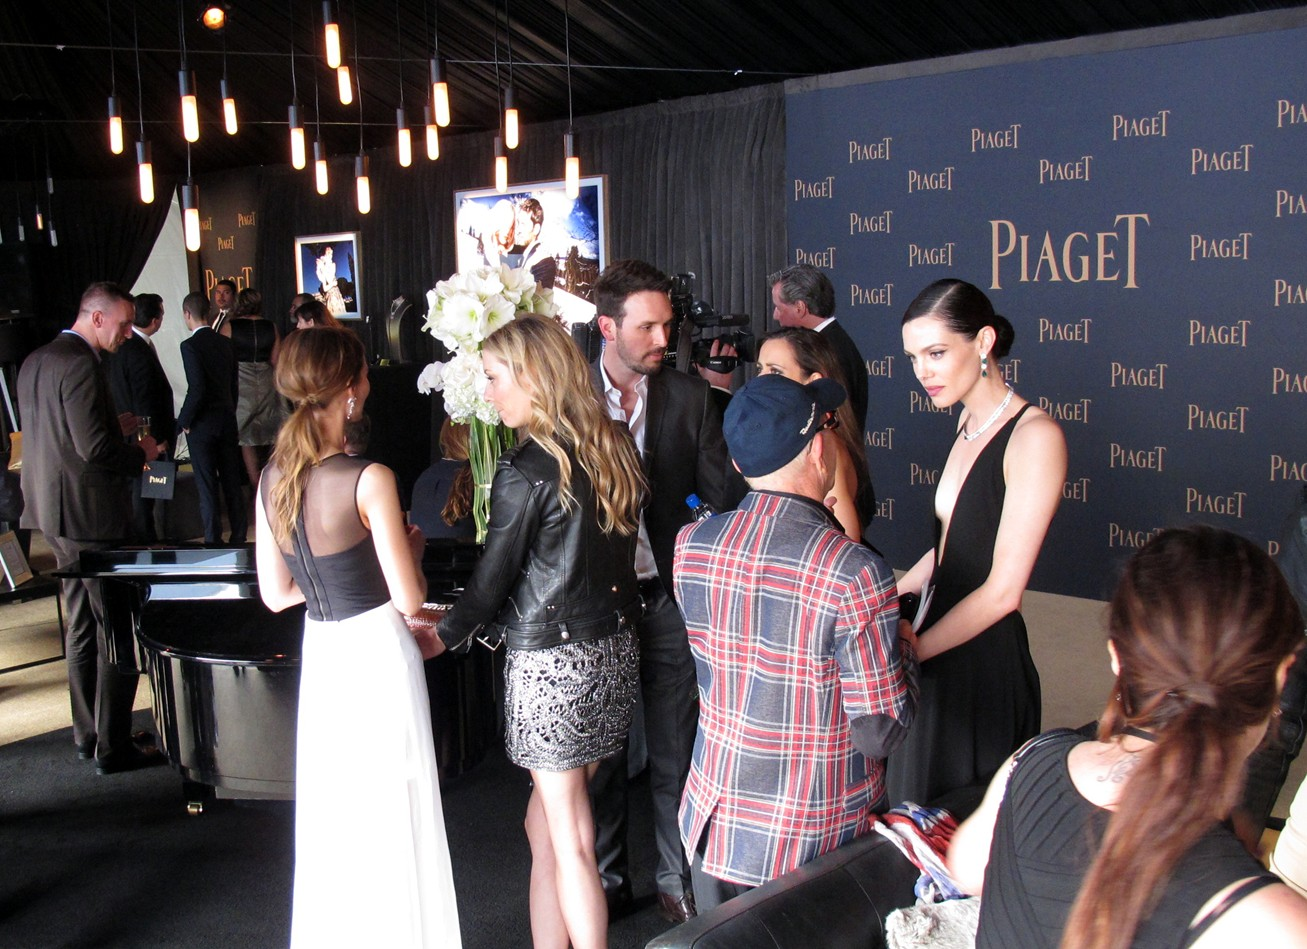 Spirit Awards, Piaget Tent, 2015